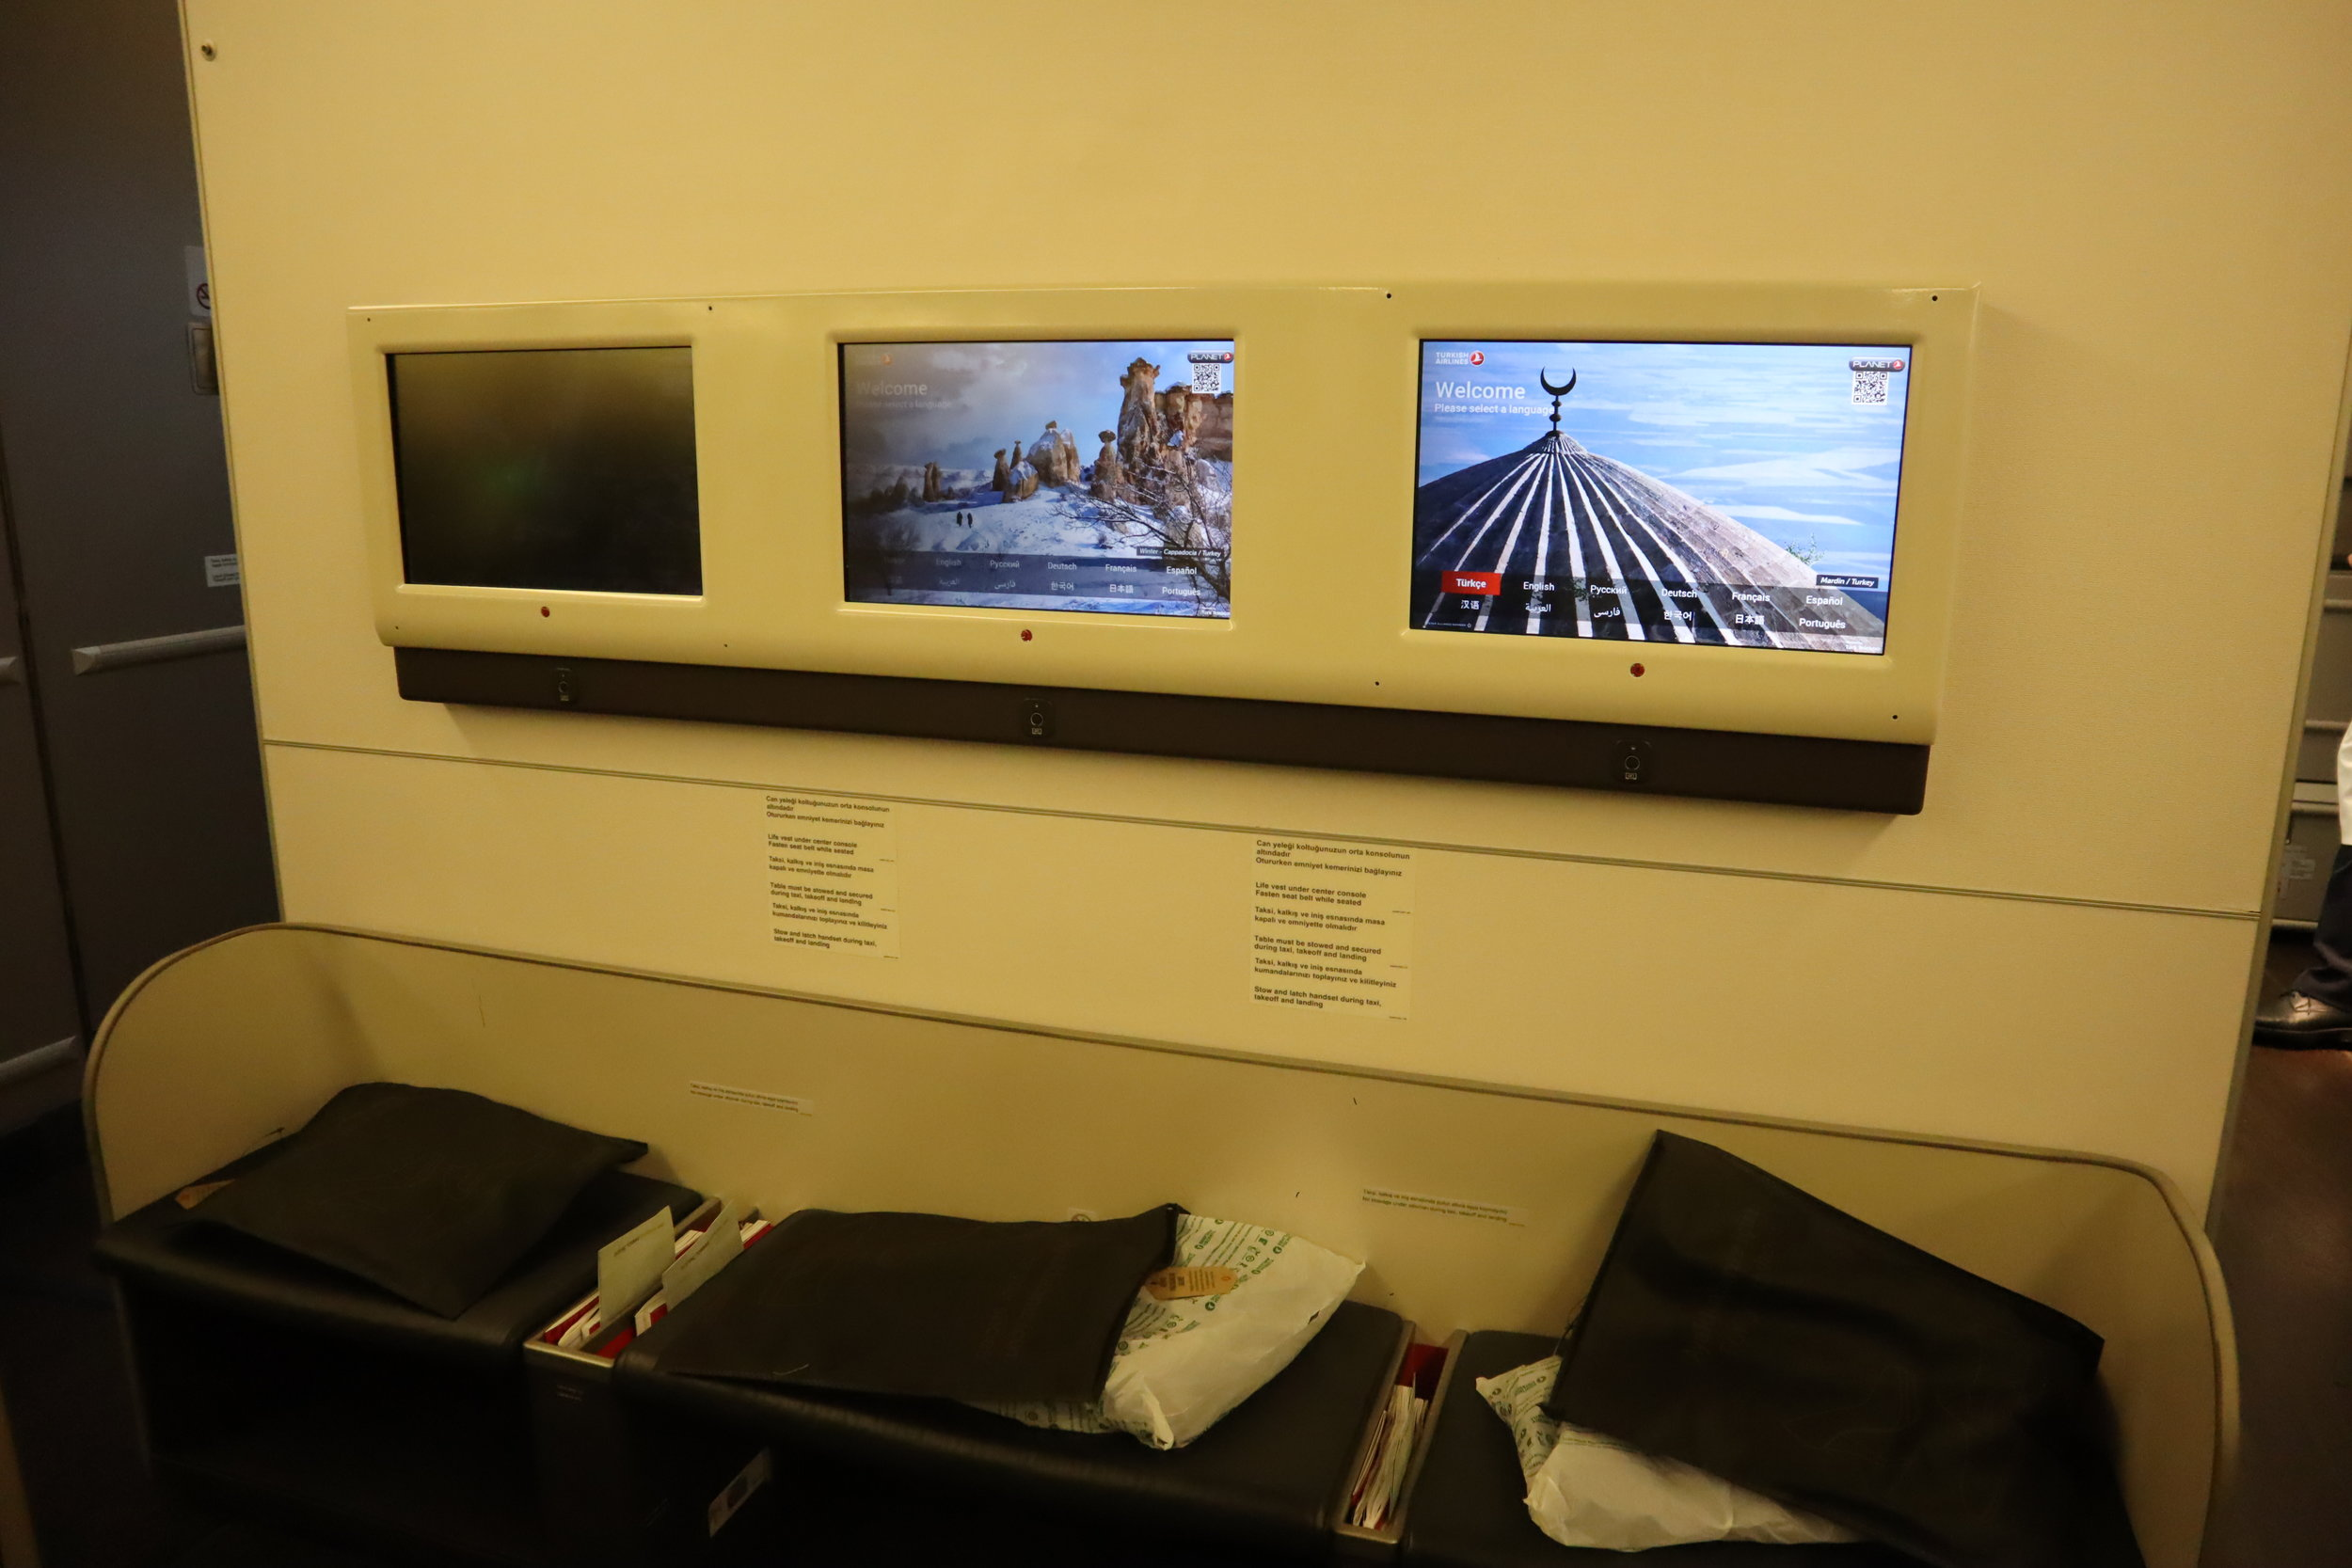 Turkish Airlines 777 business class – Entertainment screens